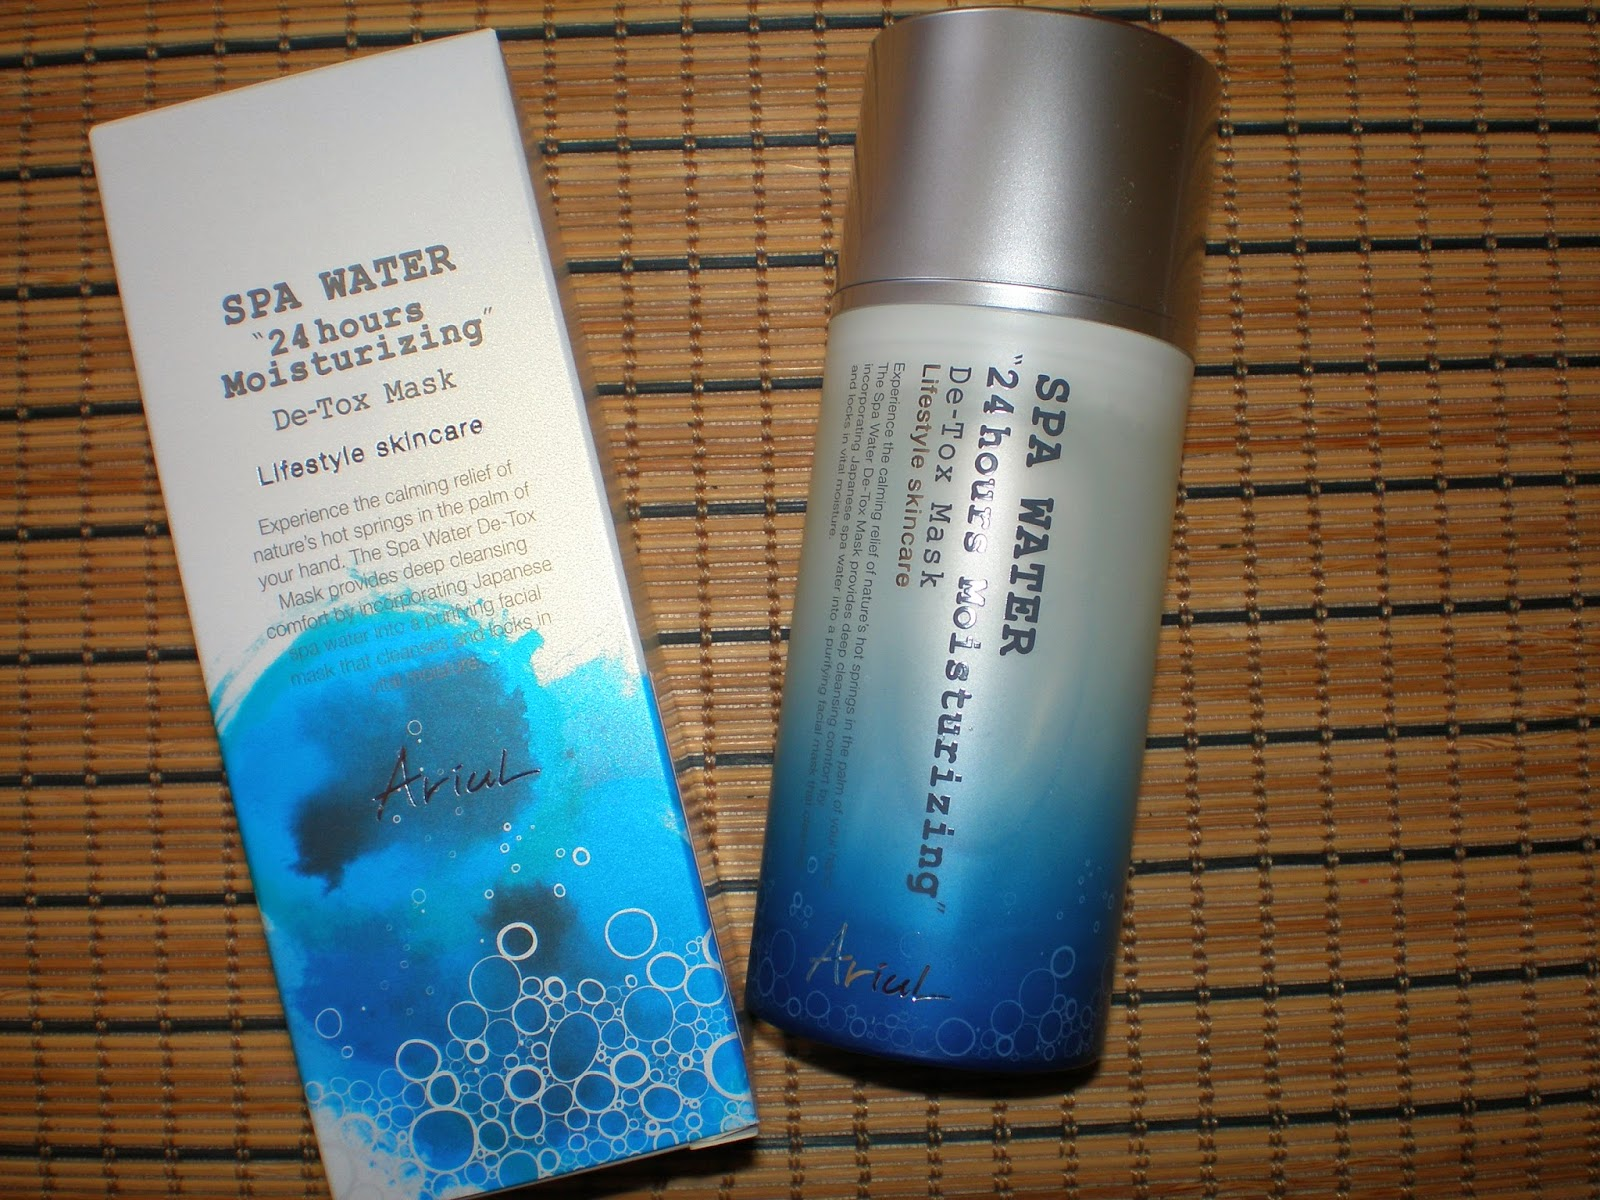 Ariul Spa Water 24Hours Moisturizing De-Tox Mask